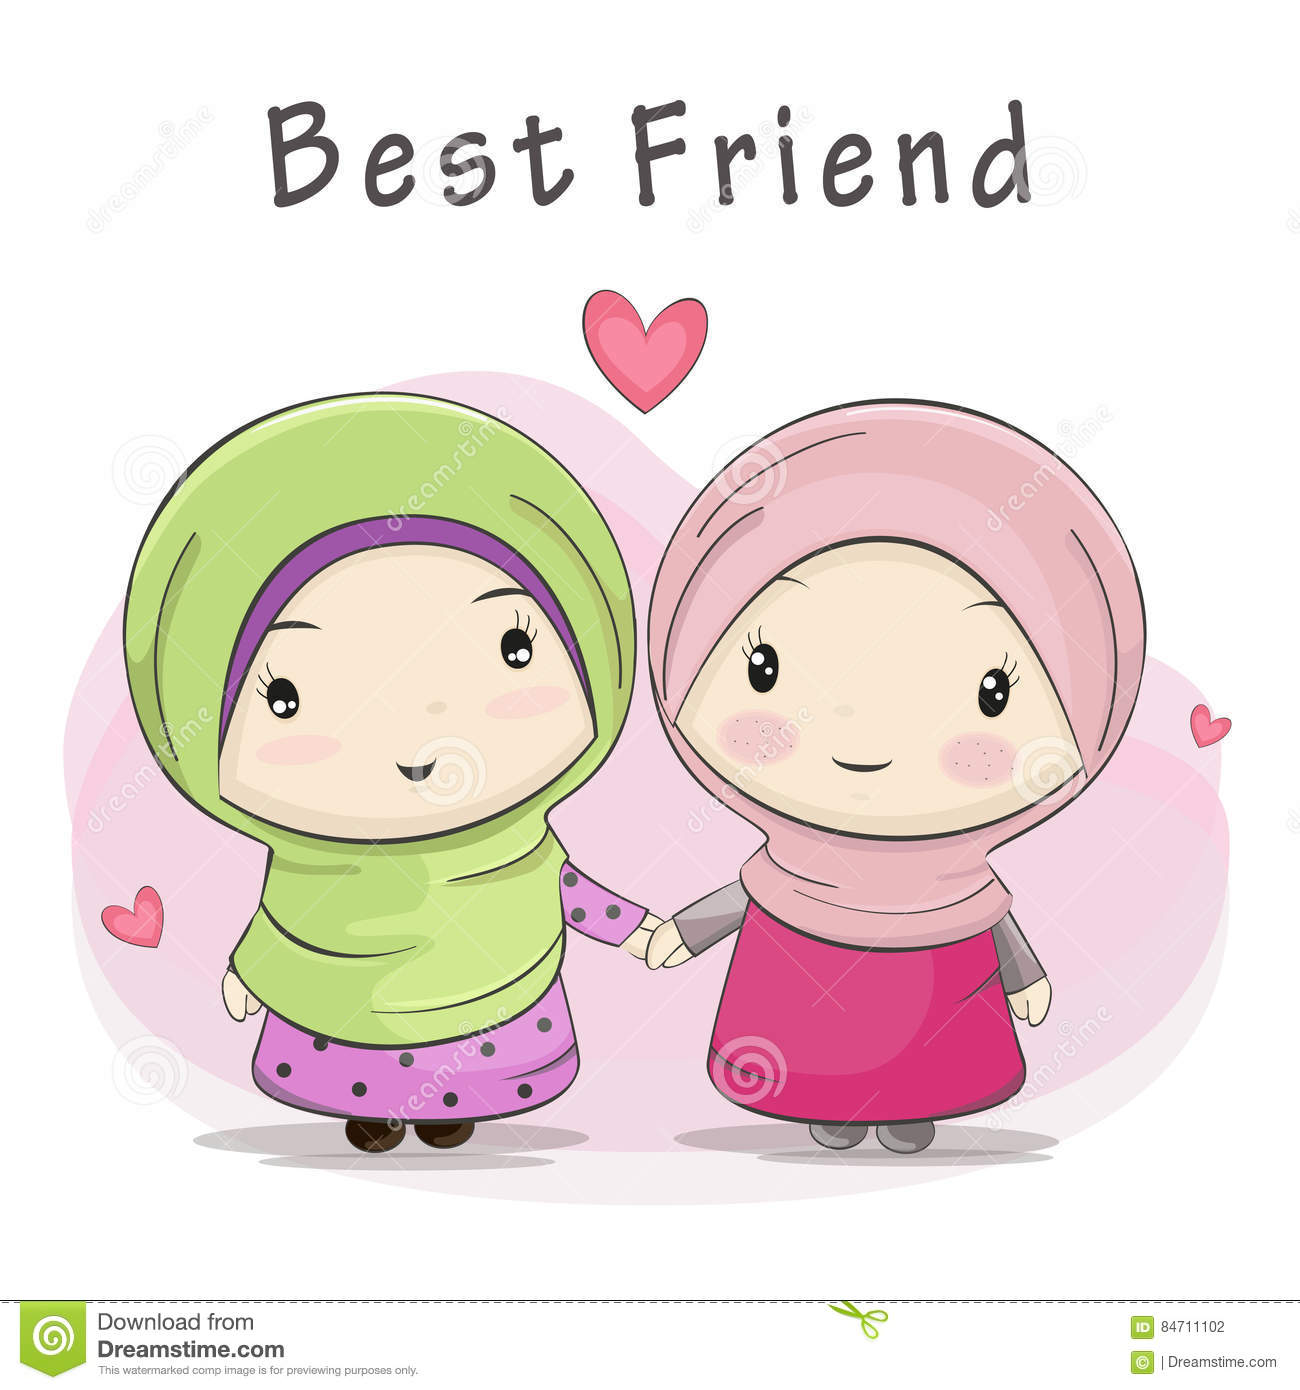 Best Friend Of Two Cute Muslim Girls Cartoon Stock Vector